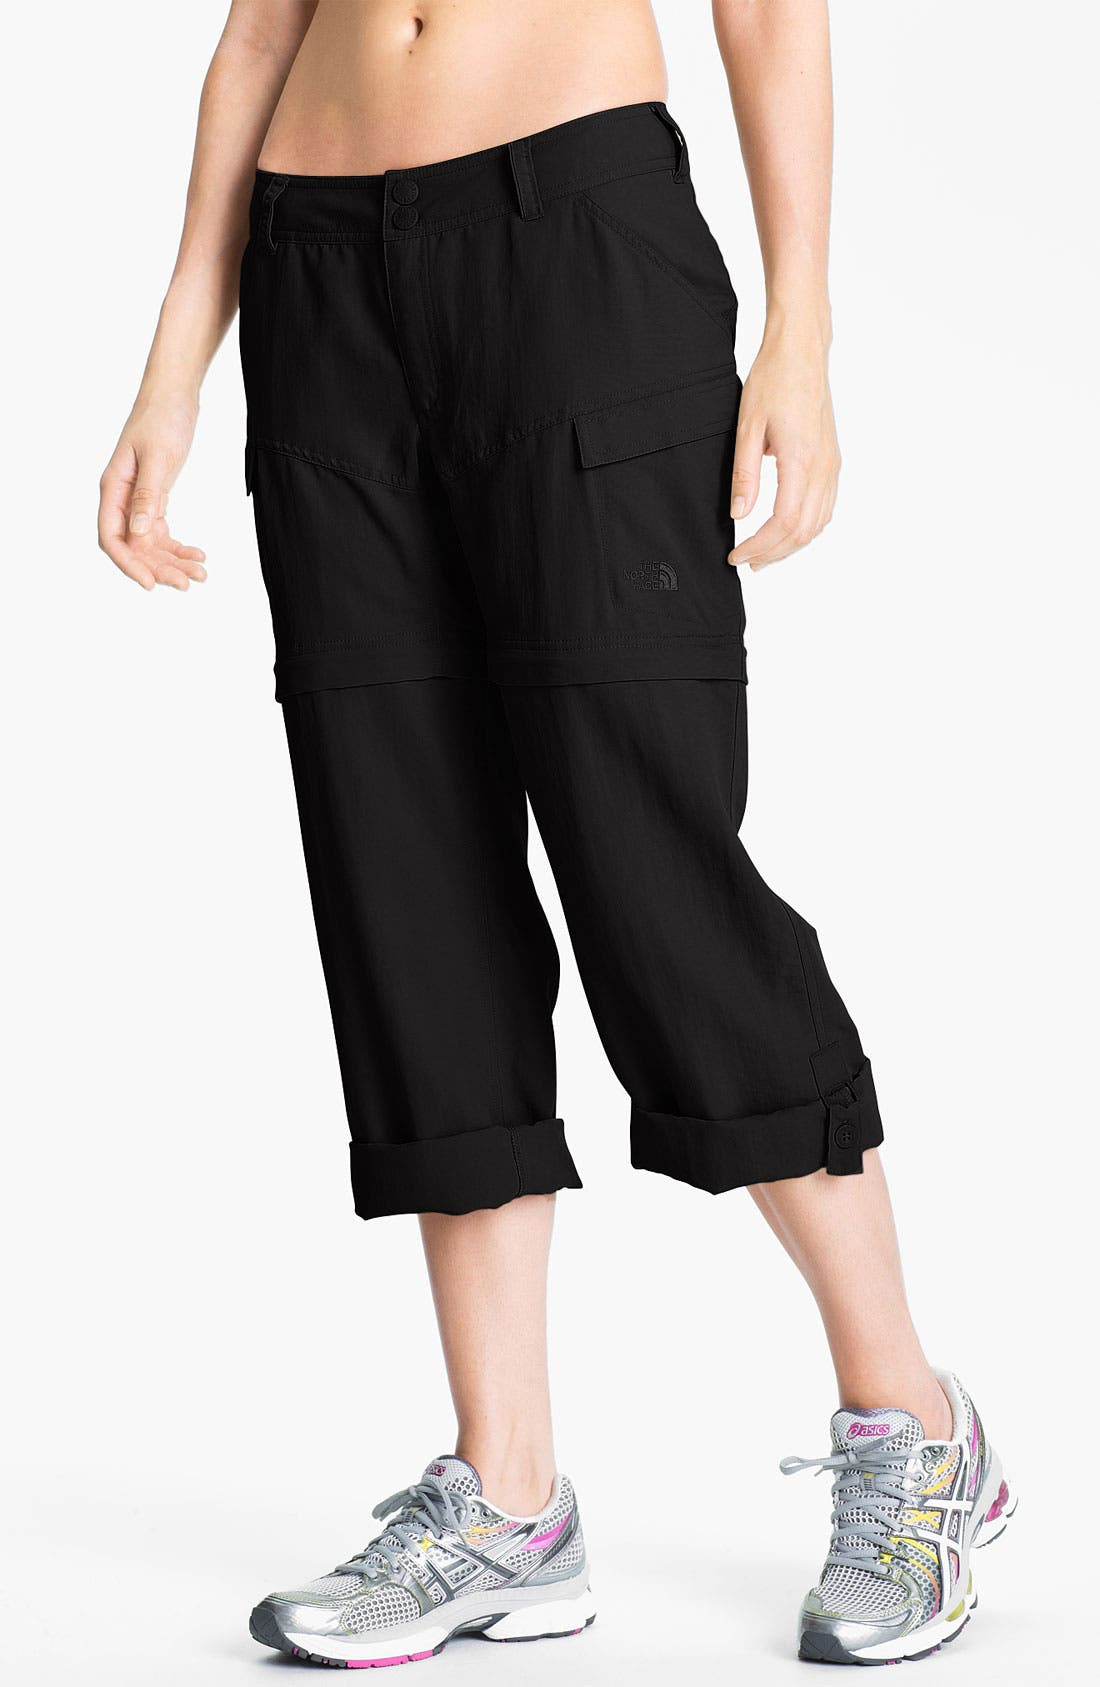 Alternate Image 1 Selected - The North Face 'Paramount' Convertible Trail Pants